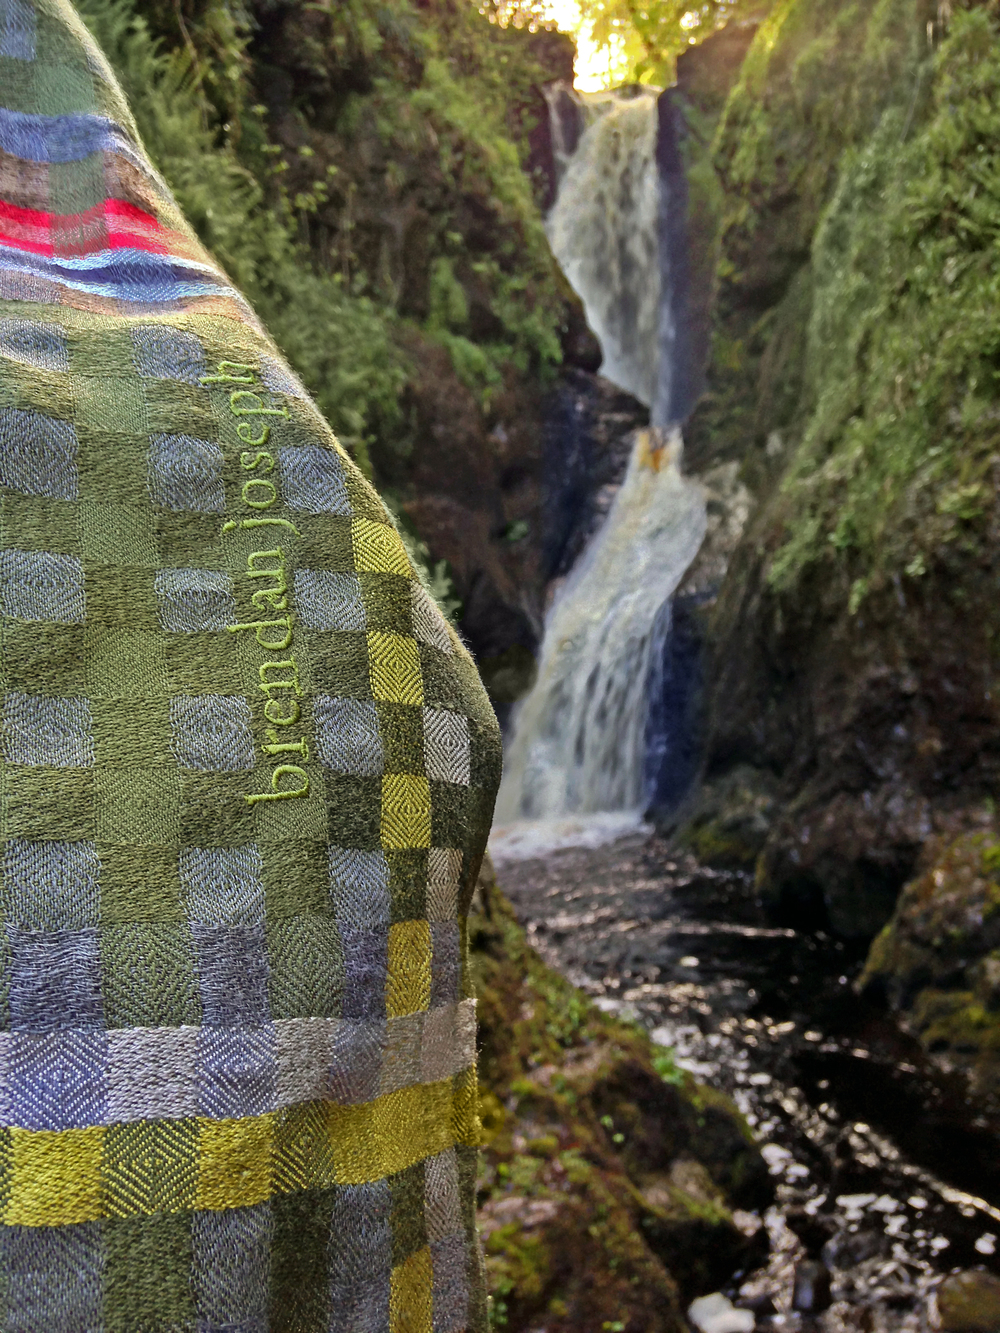 glenariff-waterfall-glens-of-antrim-weaving-northern-ireland-scarf-irish-landscape-waterfalls